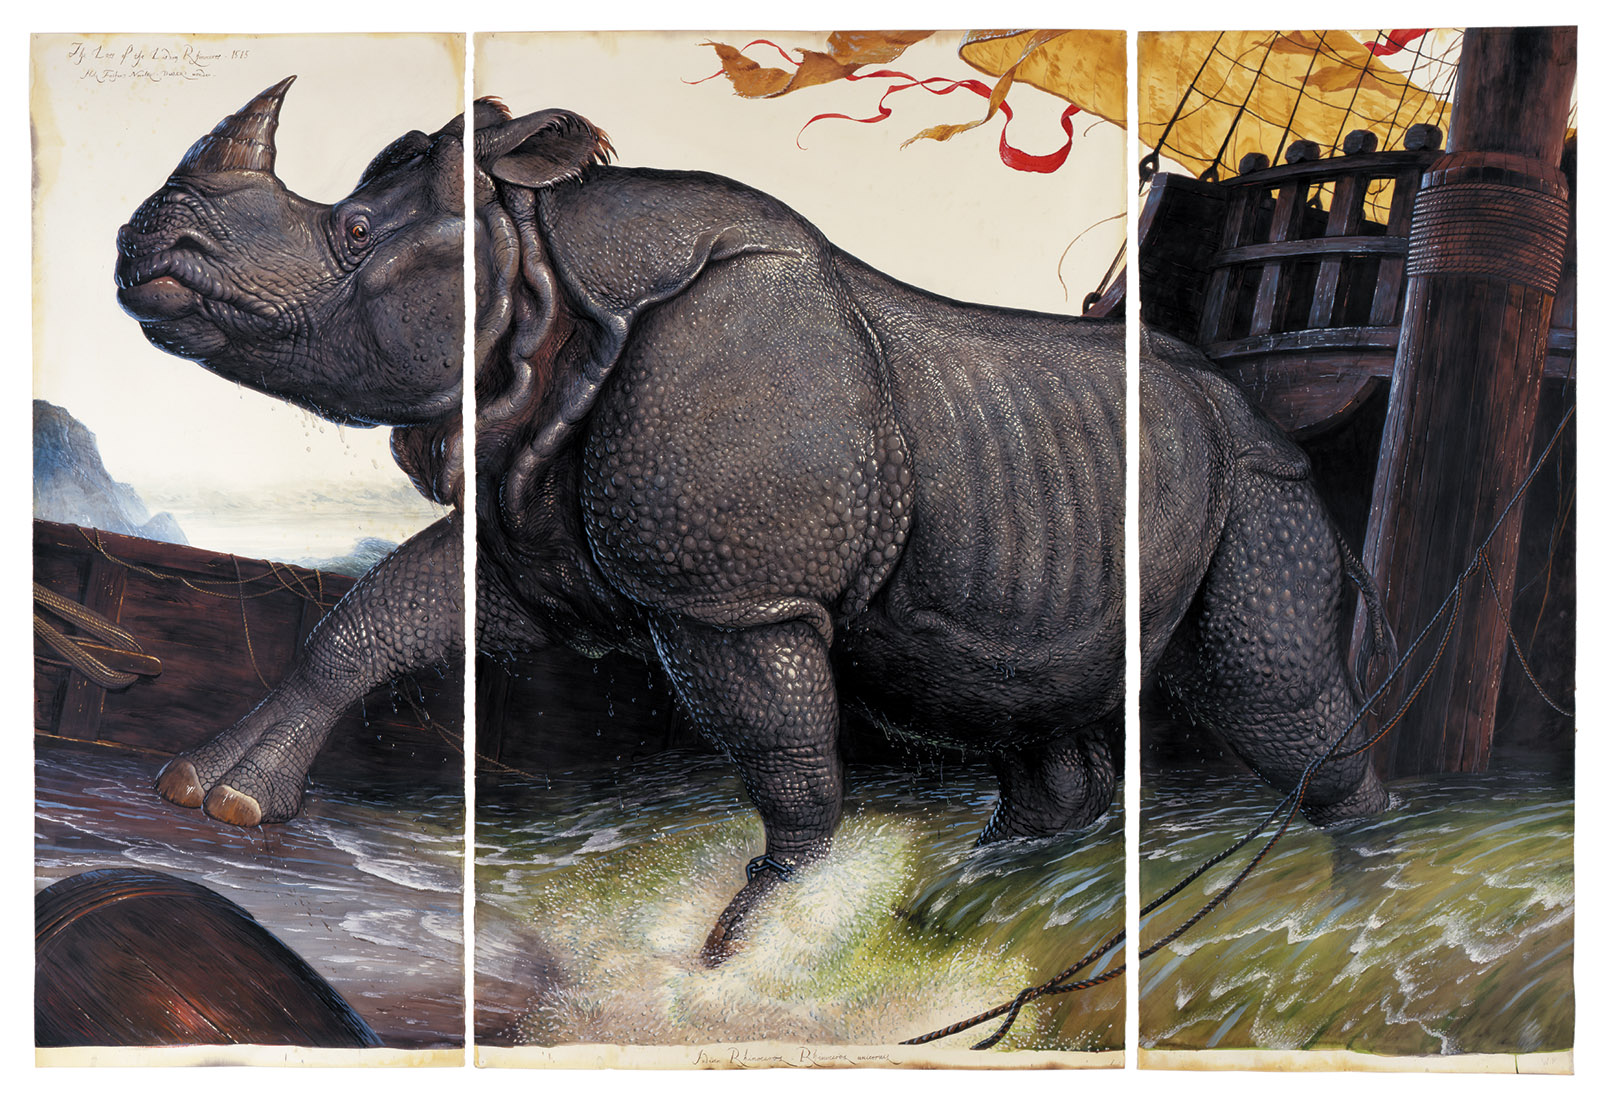 Walton Ford: Loss of the Lisbon Rhinoceros, 2008. For more on Ford's work, see Lucy Jakub's 'Walton Ford: Twenty-First-Century Naturalist' on the NYR Daily (nybooks.com/ford-daily).